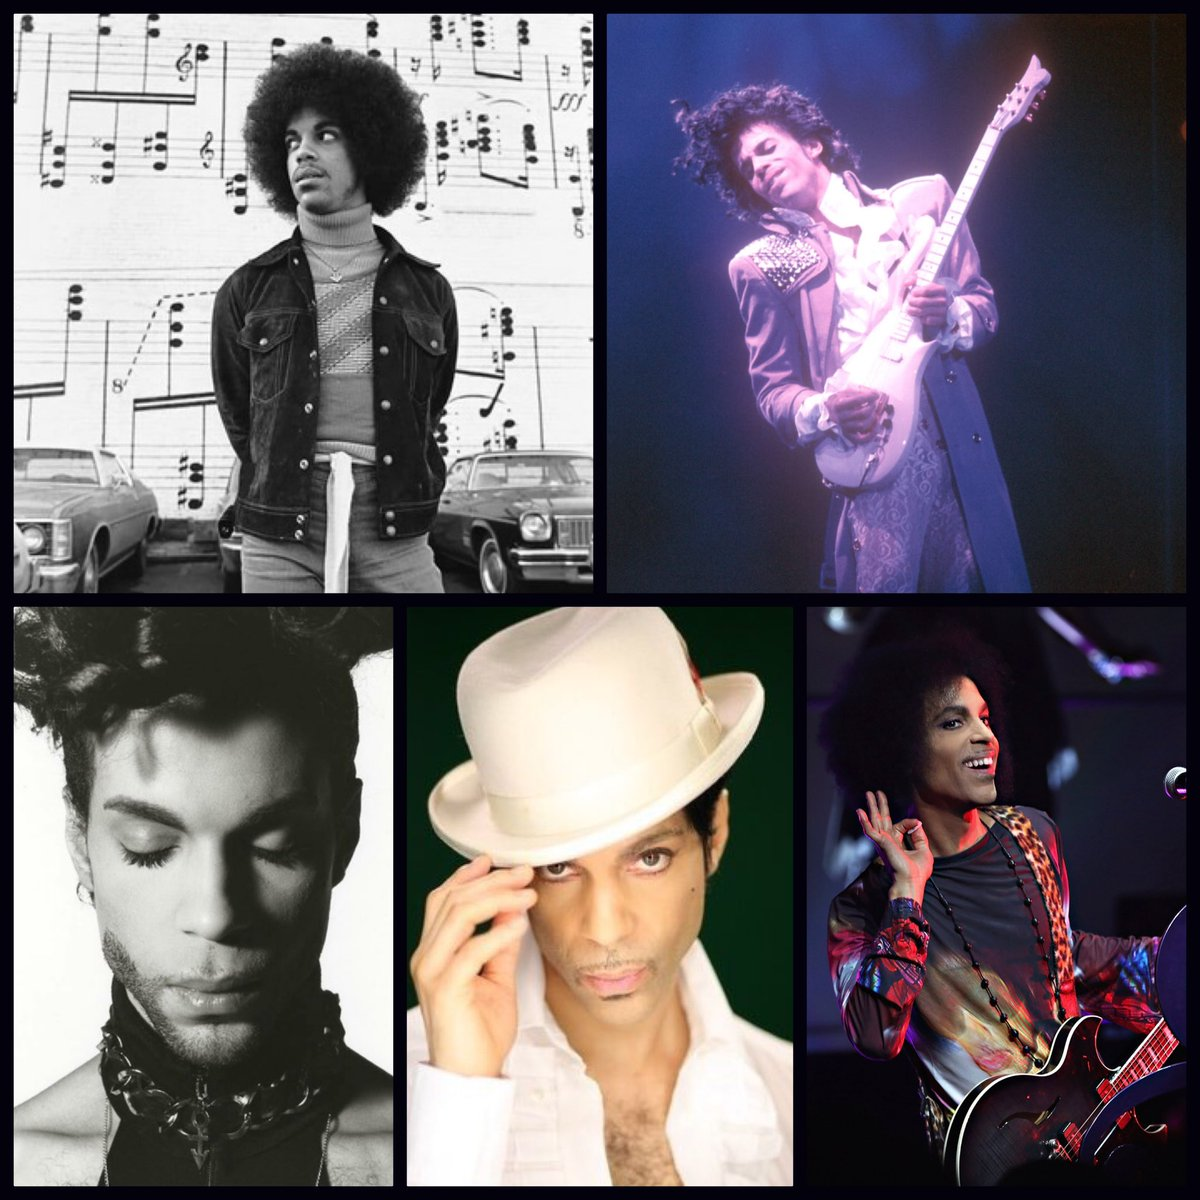 prince - Twitter Search